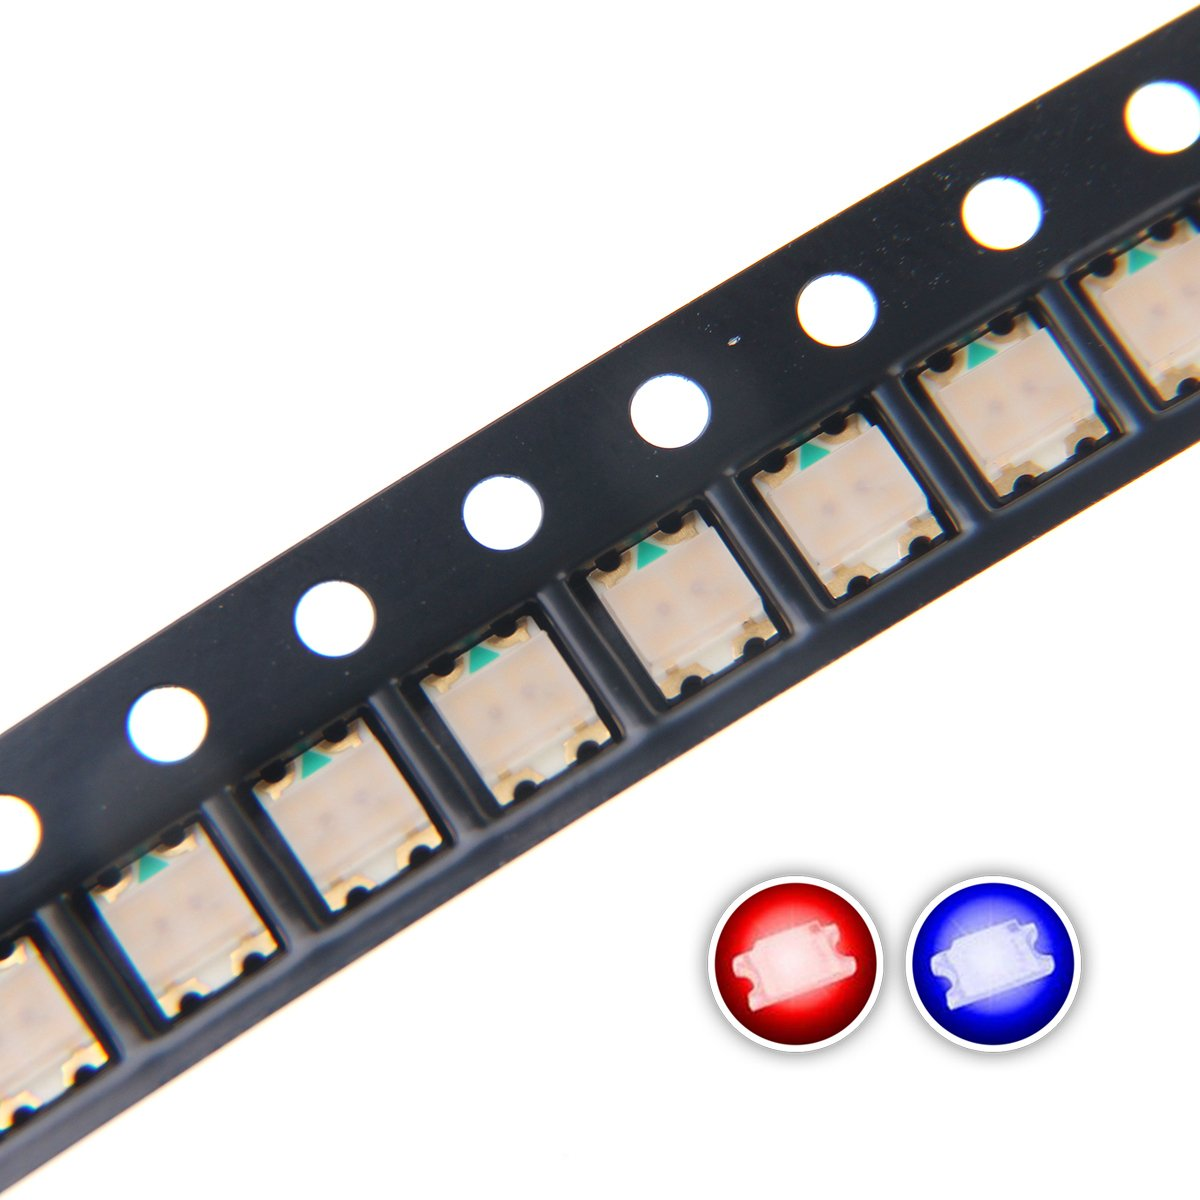 1206 SMD LED Diode Lights Chips Emitting White/Red/Green/Blue/Yellow/Purple/Pink